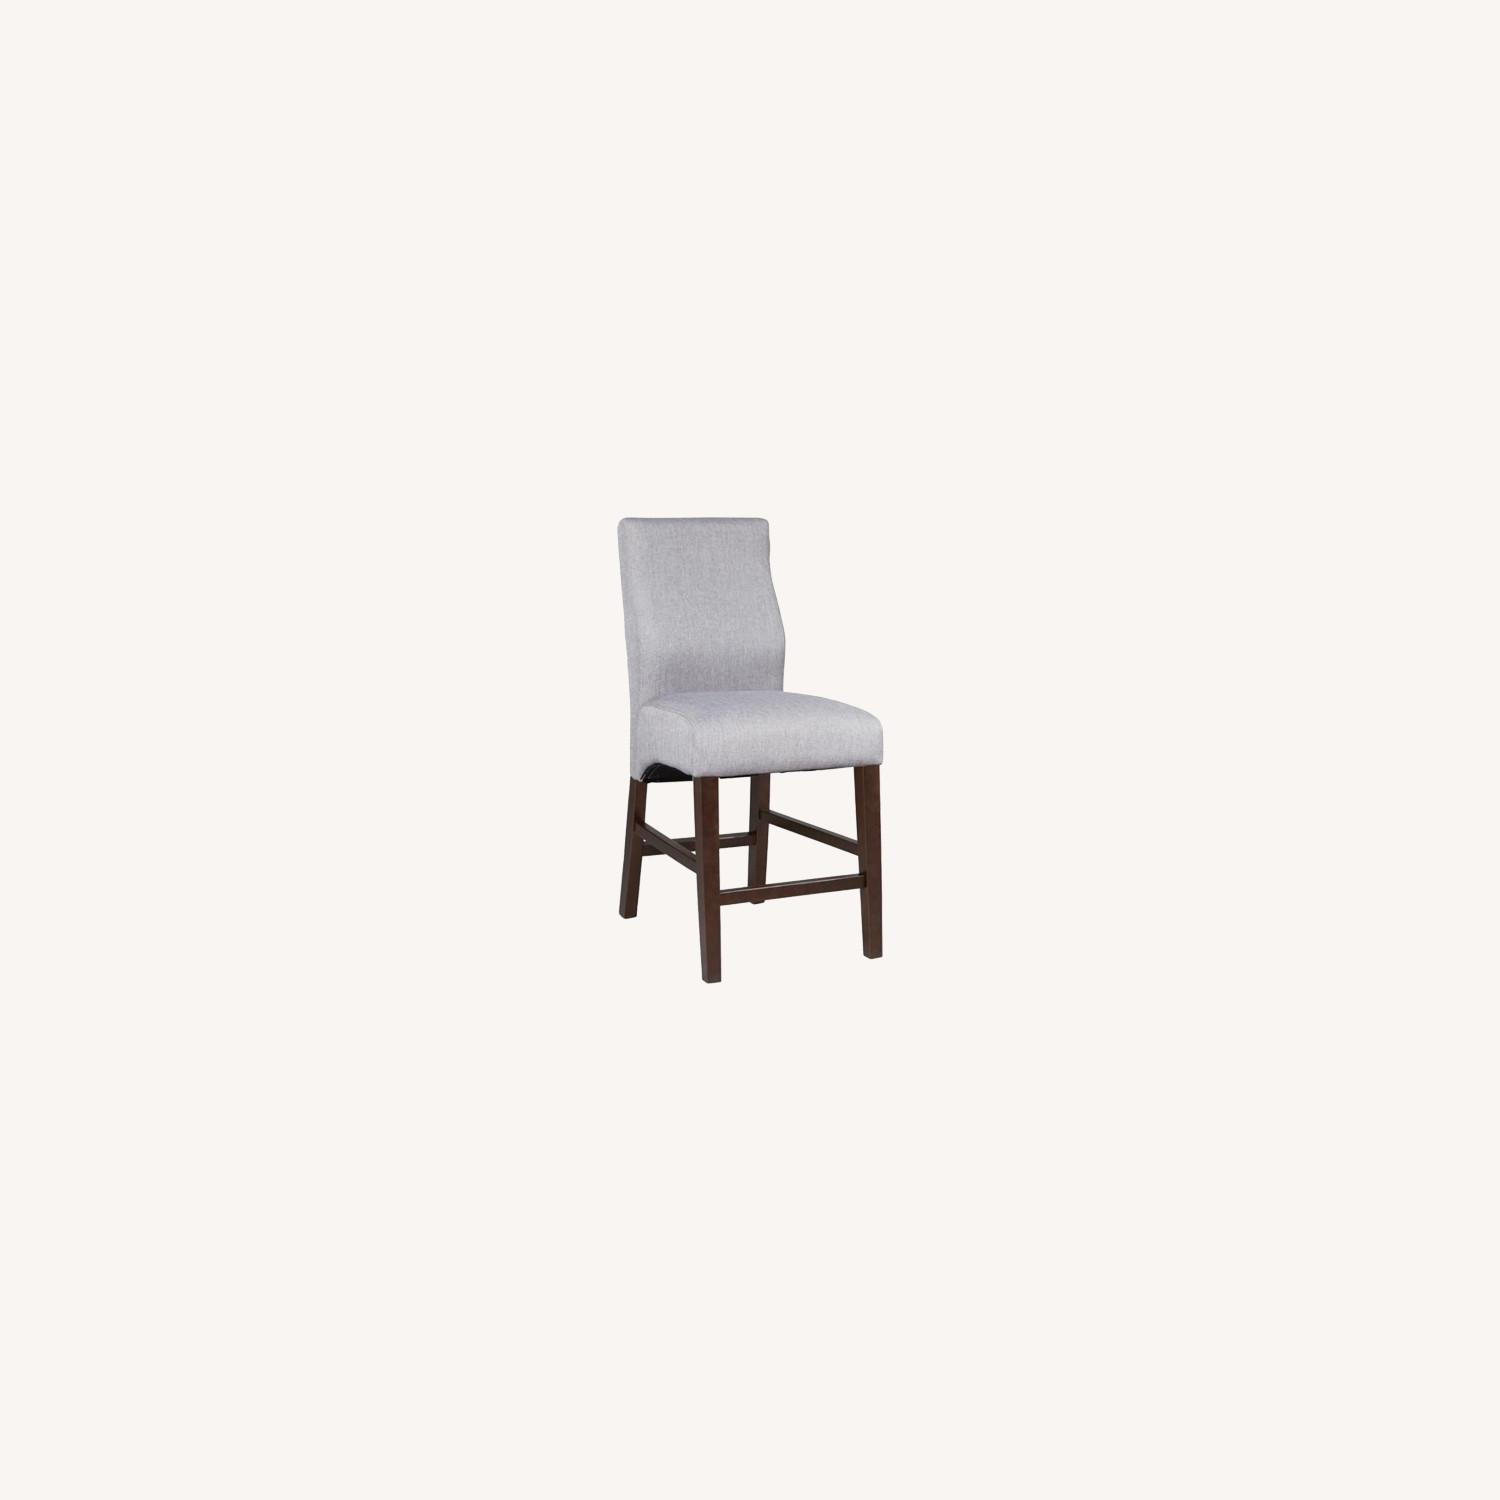 Counter Height Stool Upholstered In Grey Fabric - image-5